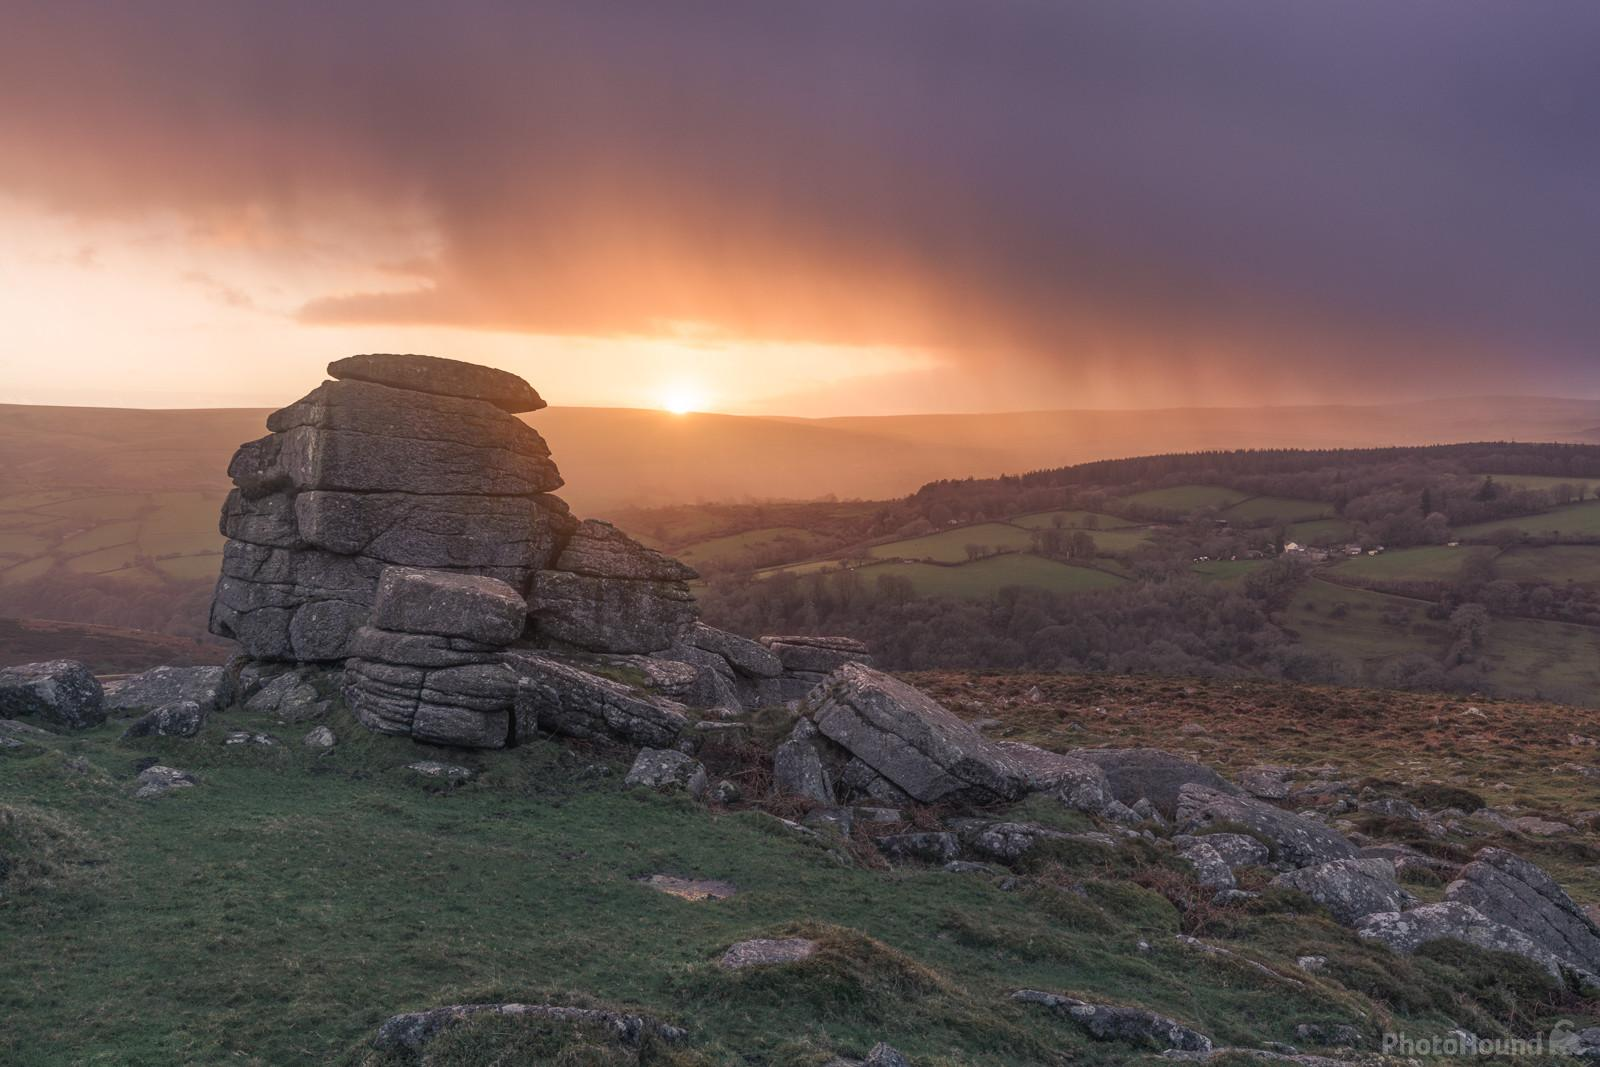 Late autumnal sunset on Yar Tor as a rain storm approaches.